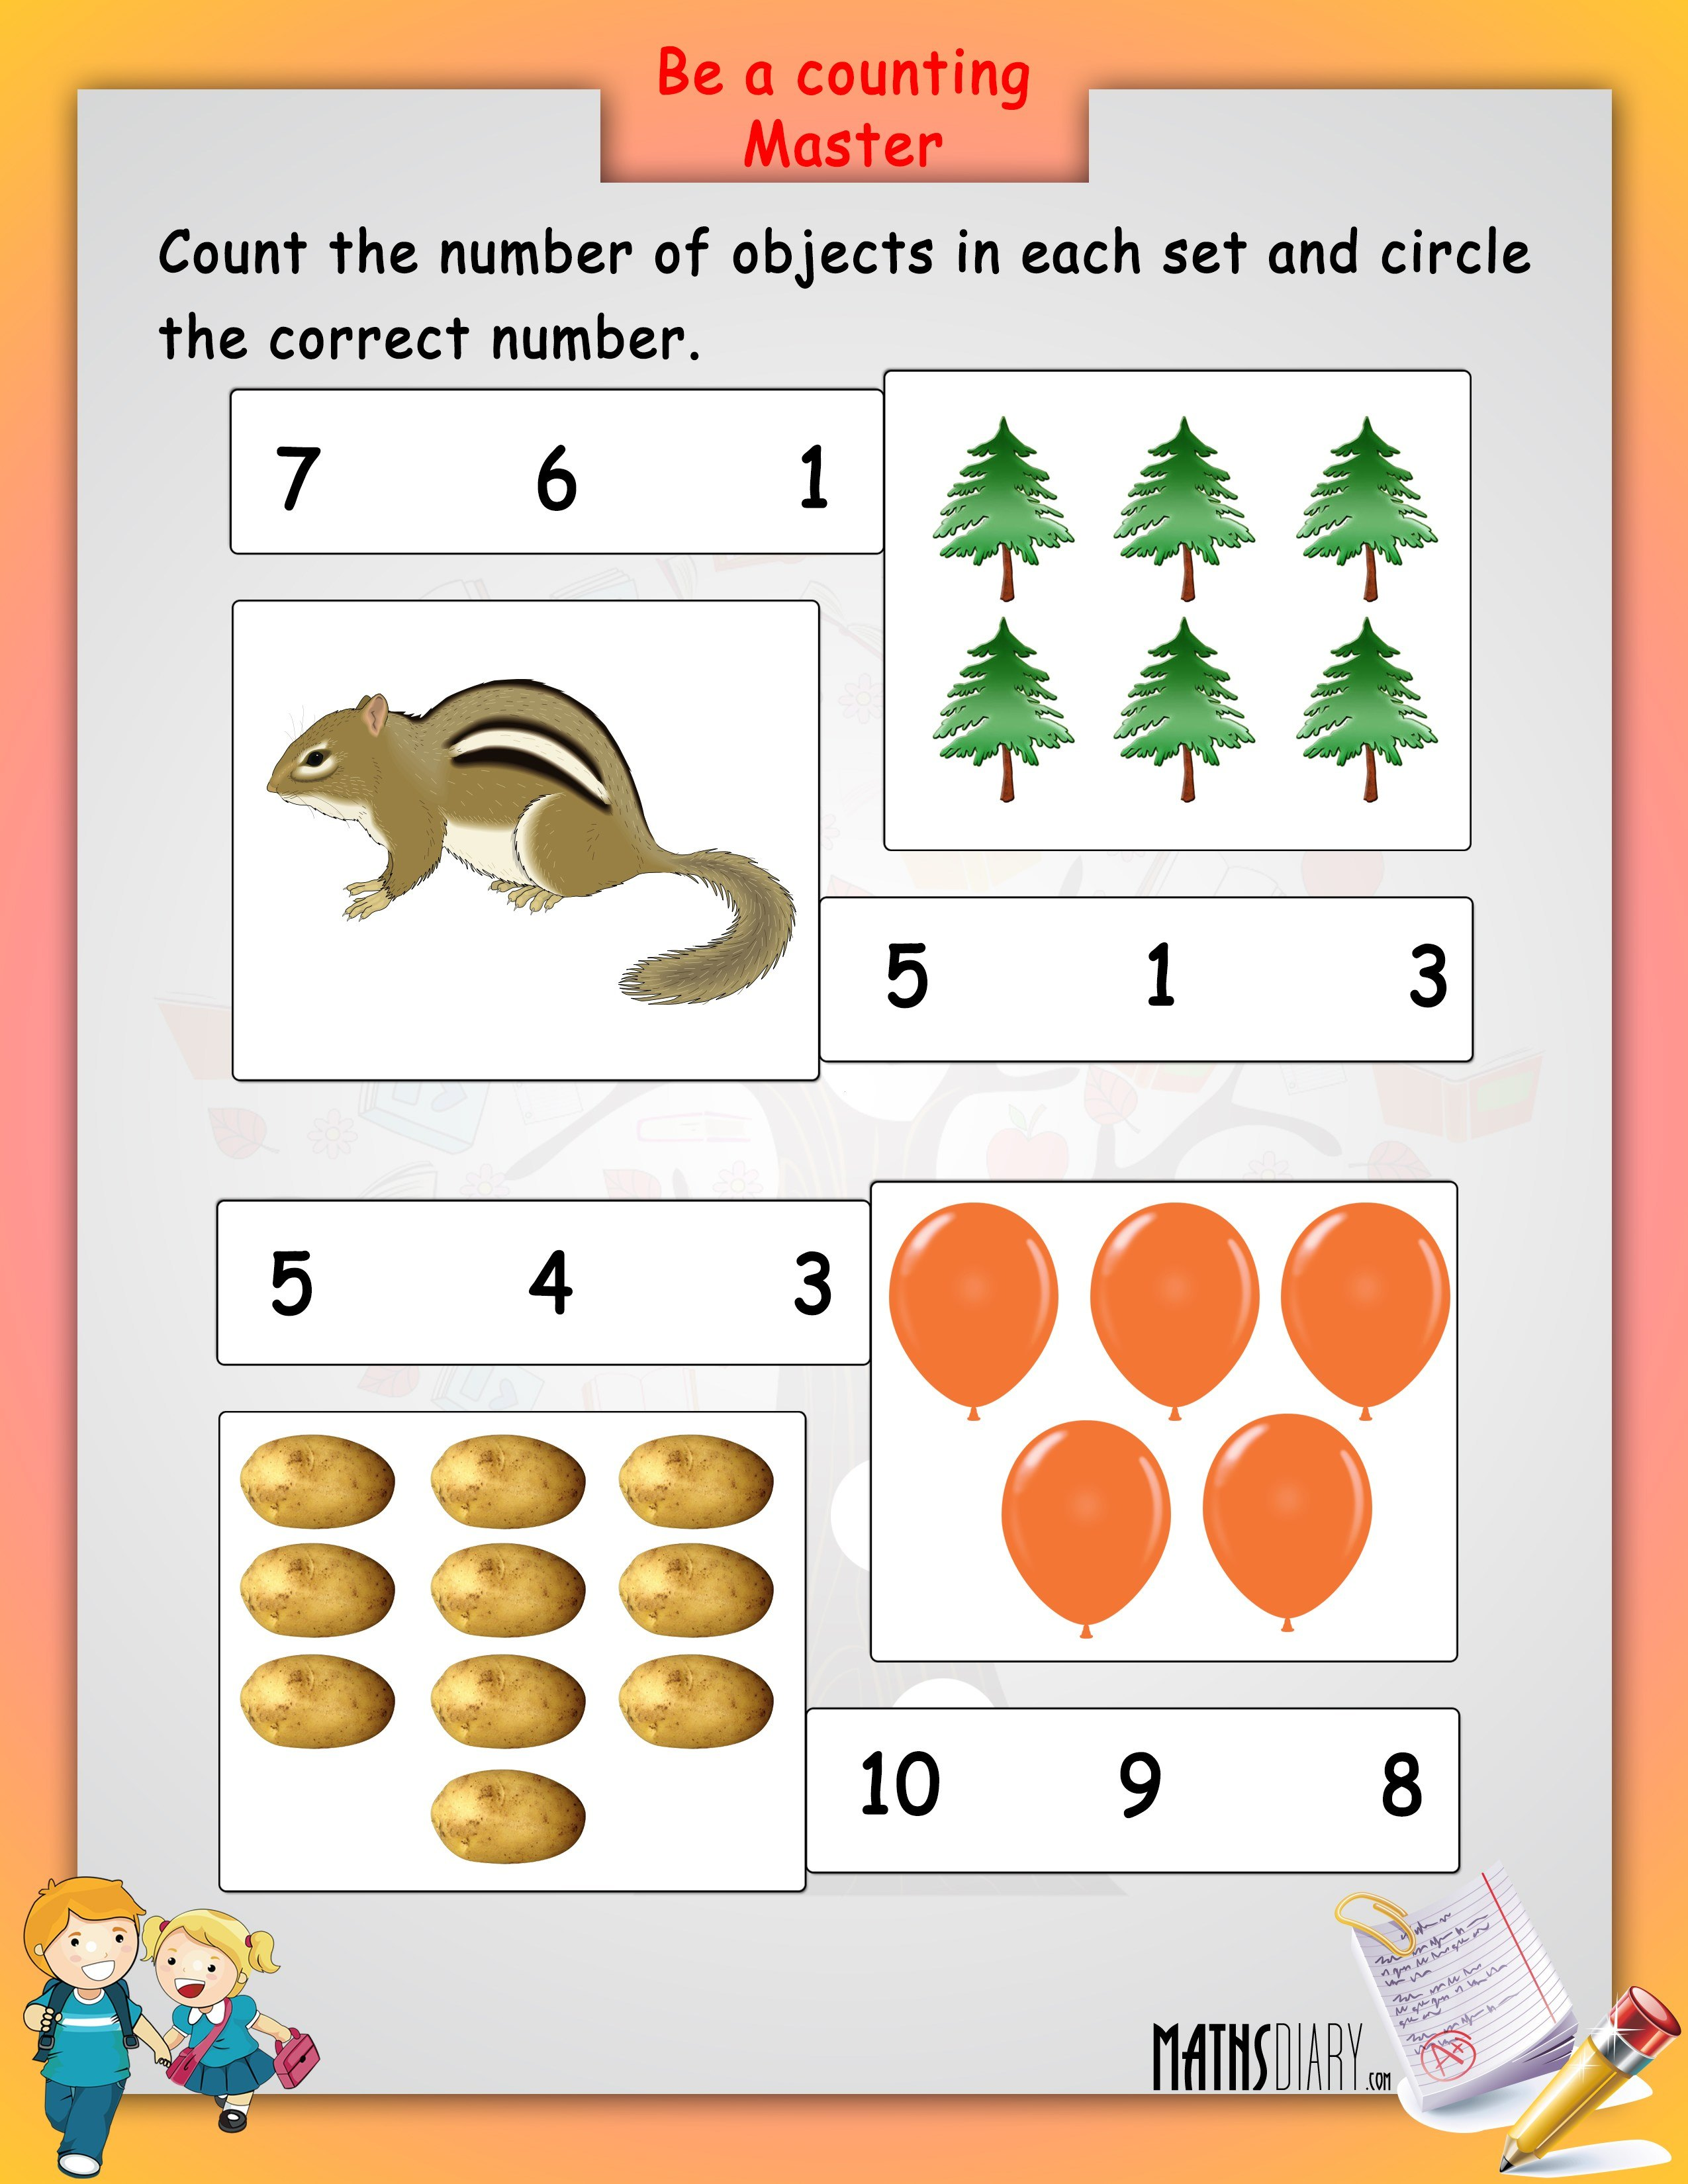 Worksheets Practical Math Worksheets practical math worksheets free library download and maths nursery worksheets